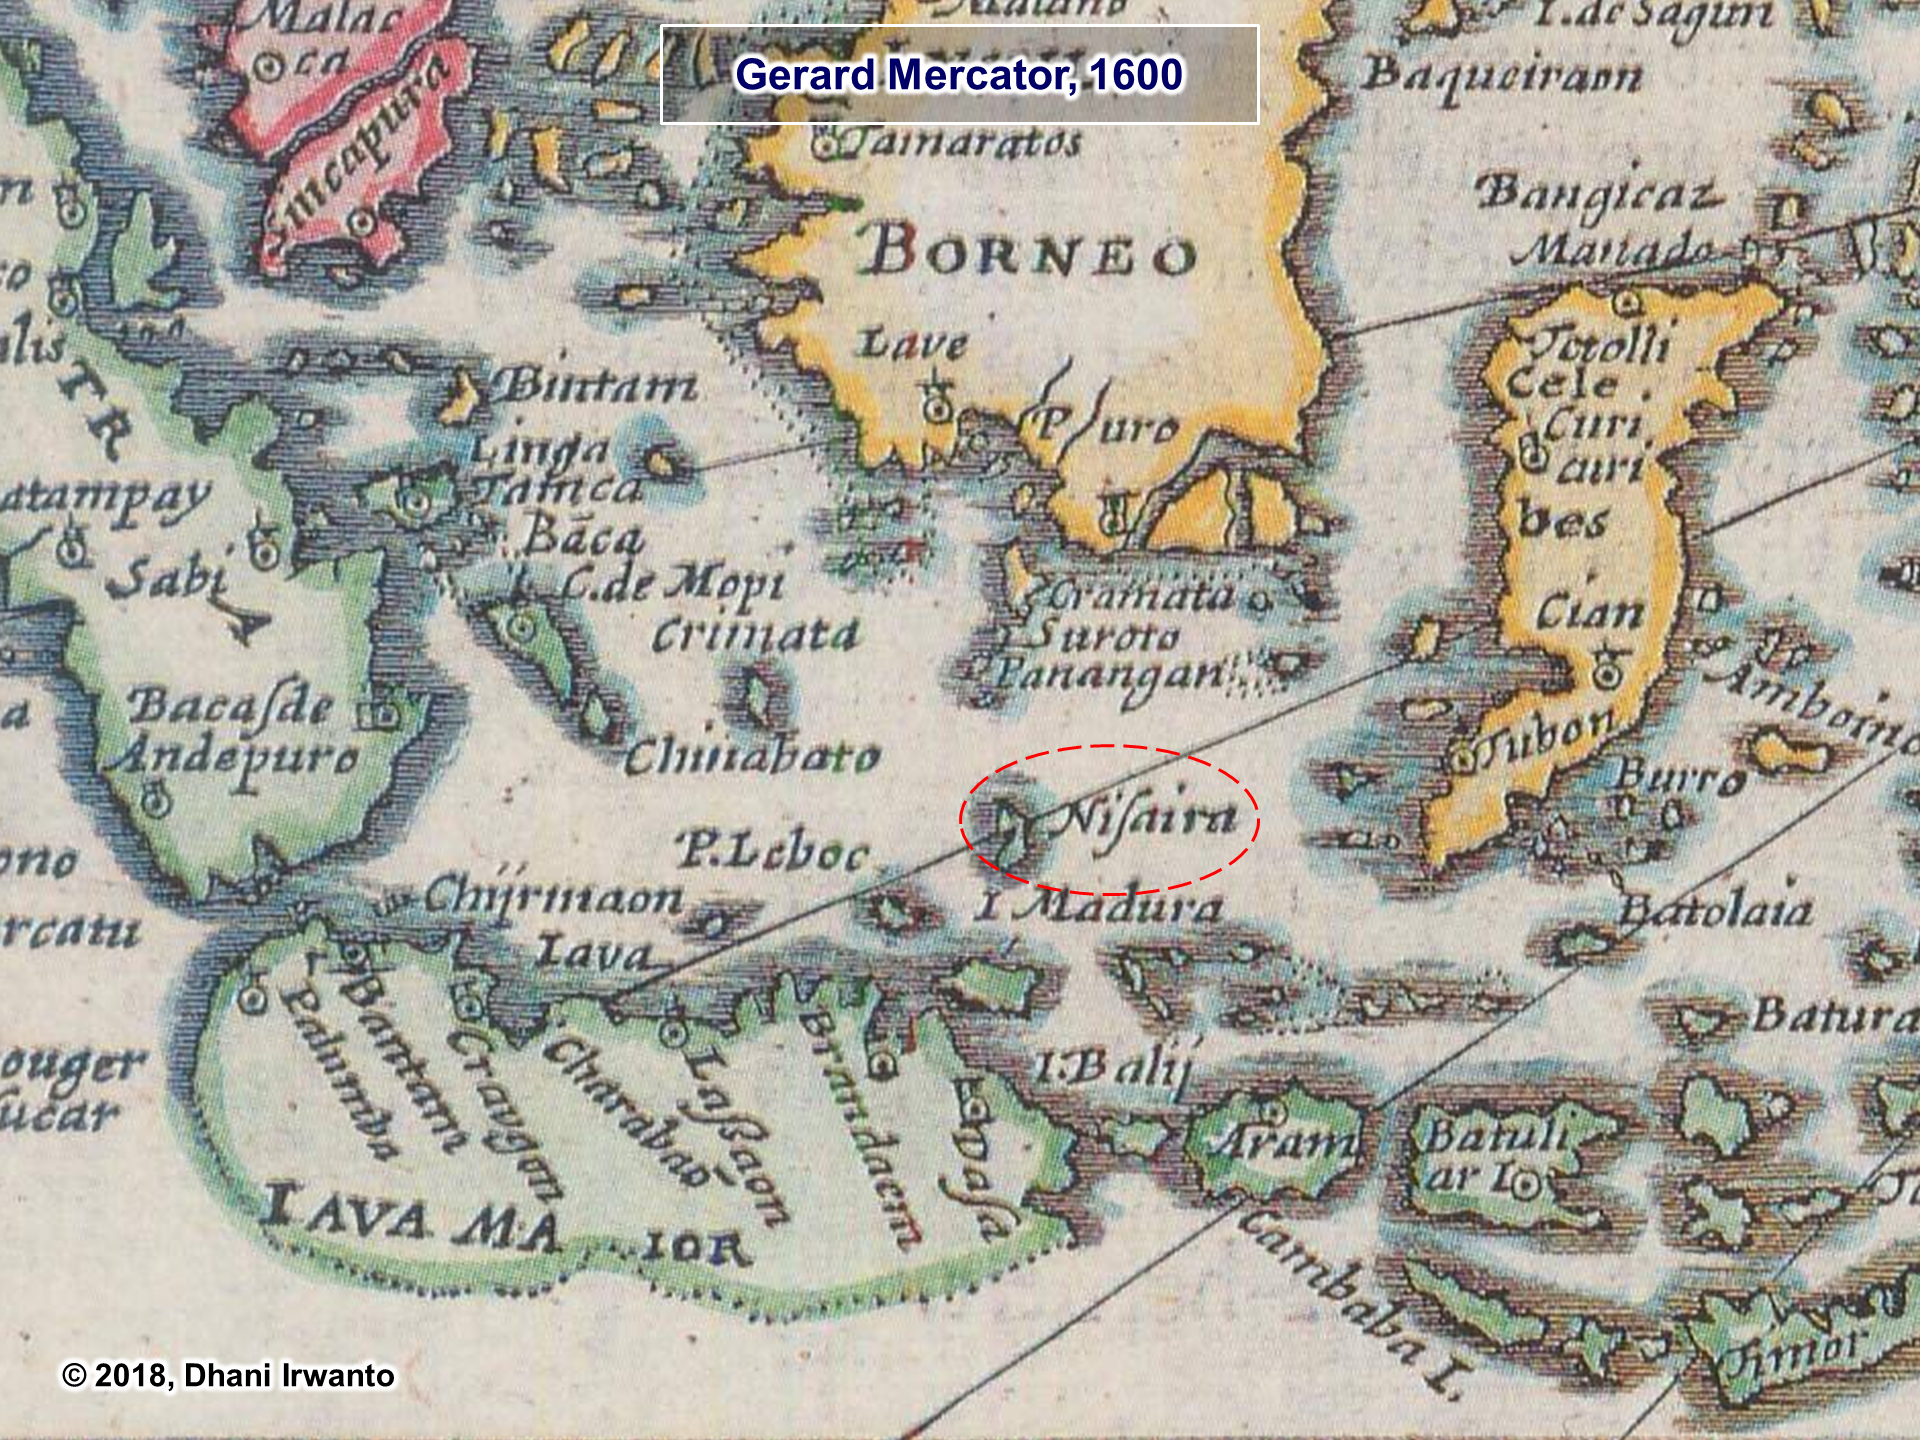 Nusasura: The Atlantis Island? | Atlantis in the Java Sea